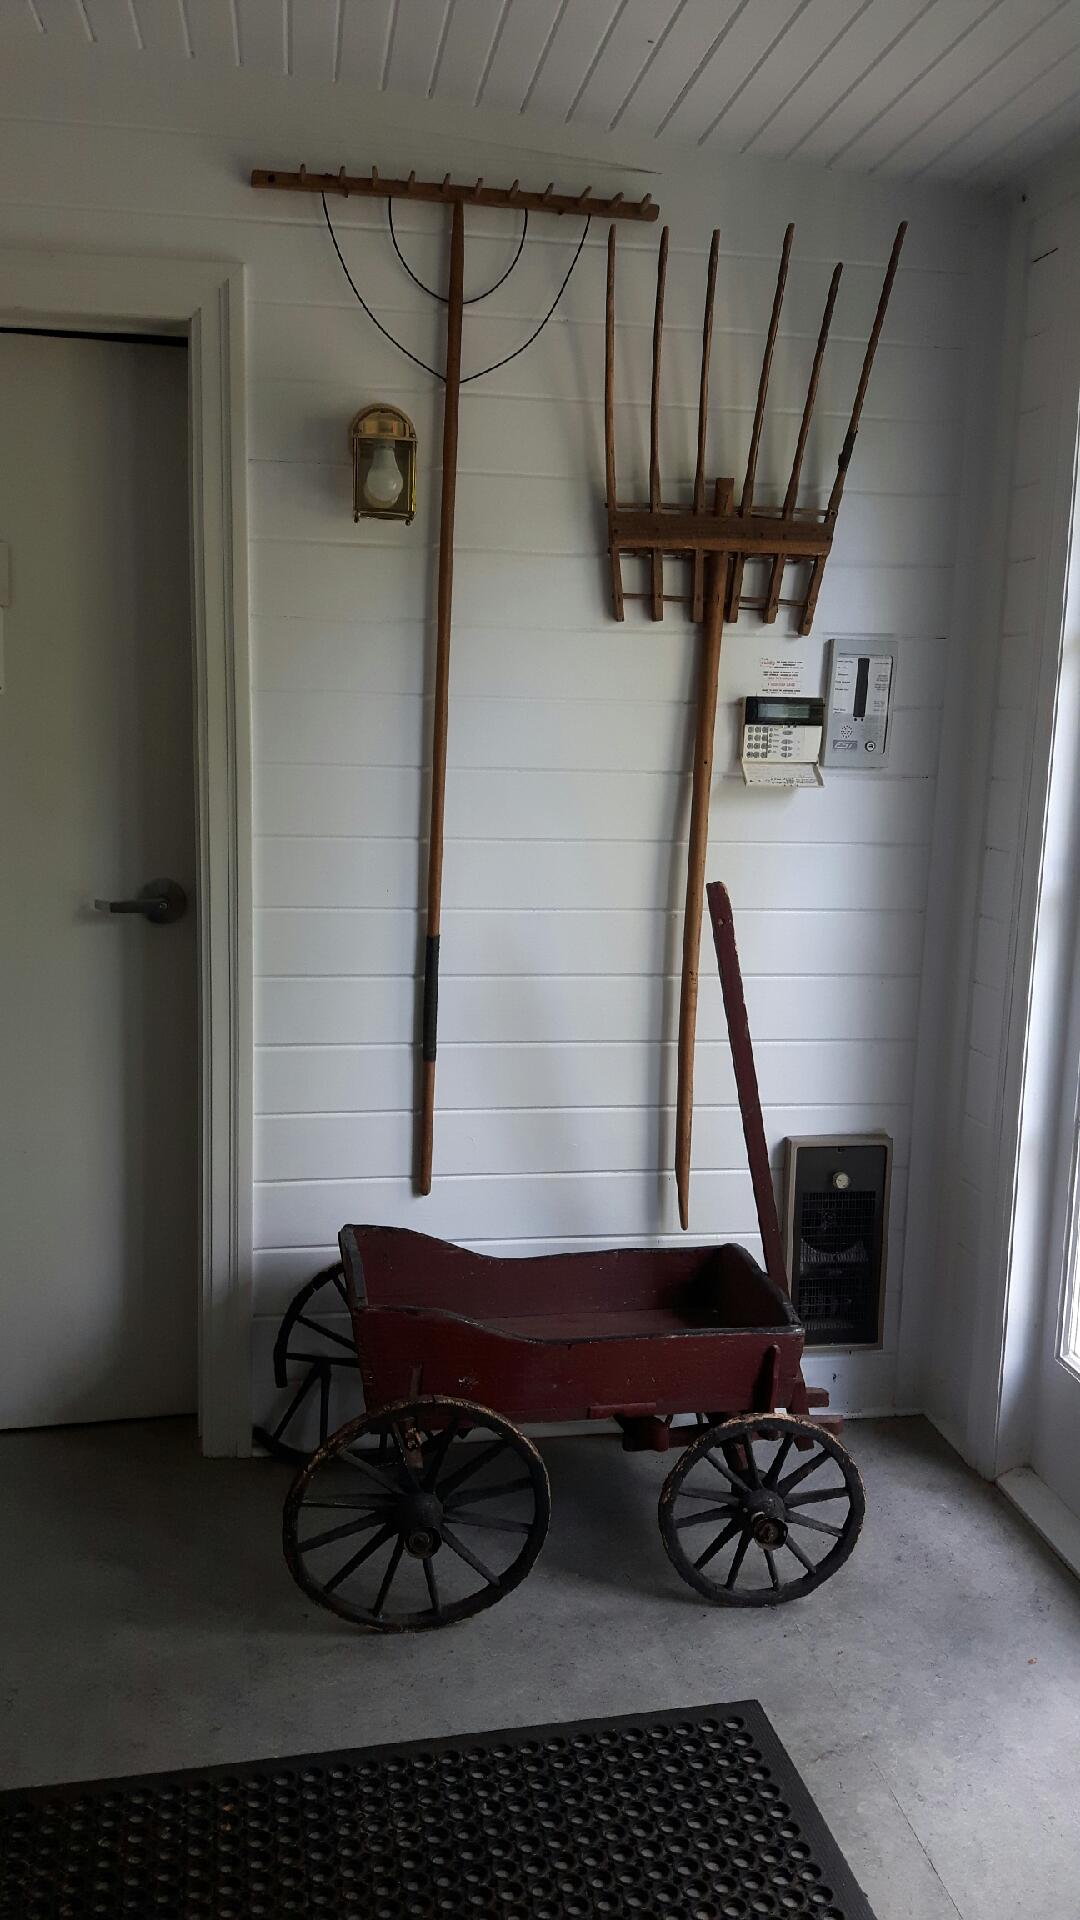 Inside the west entrance is a display of old gardening implements